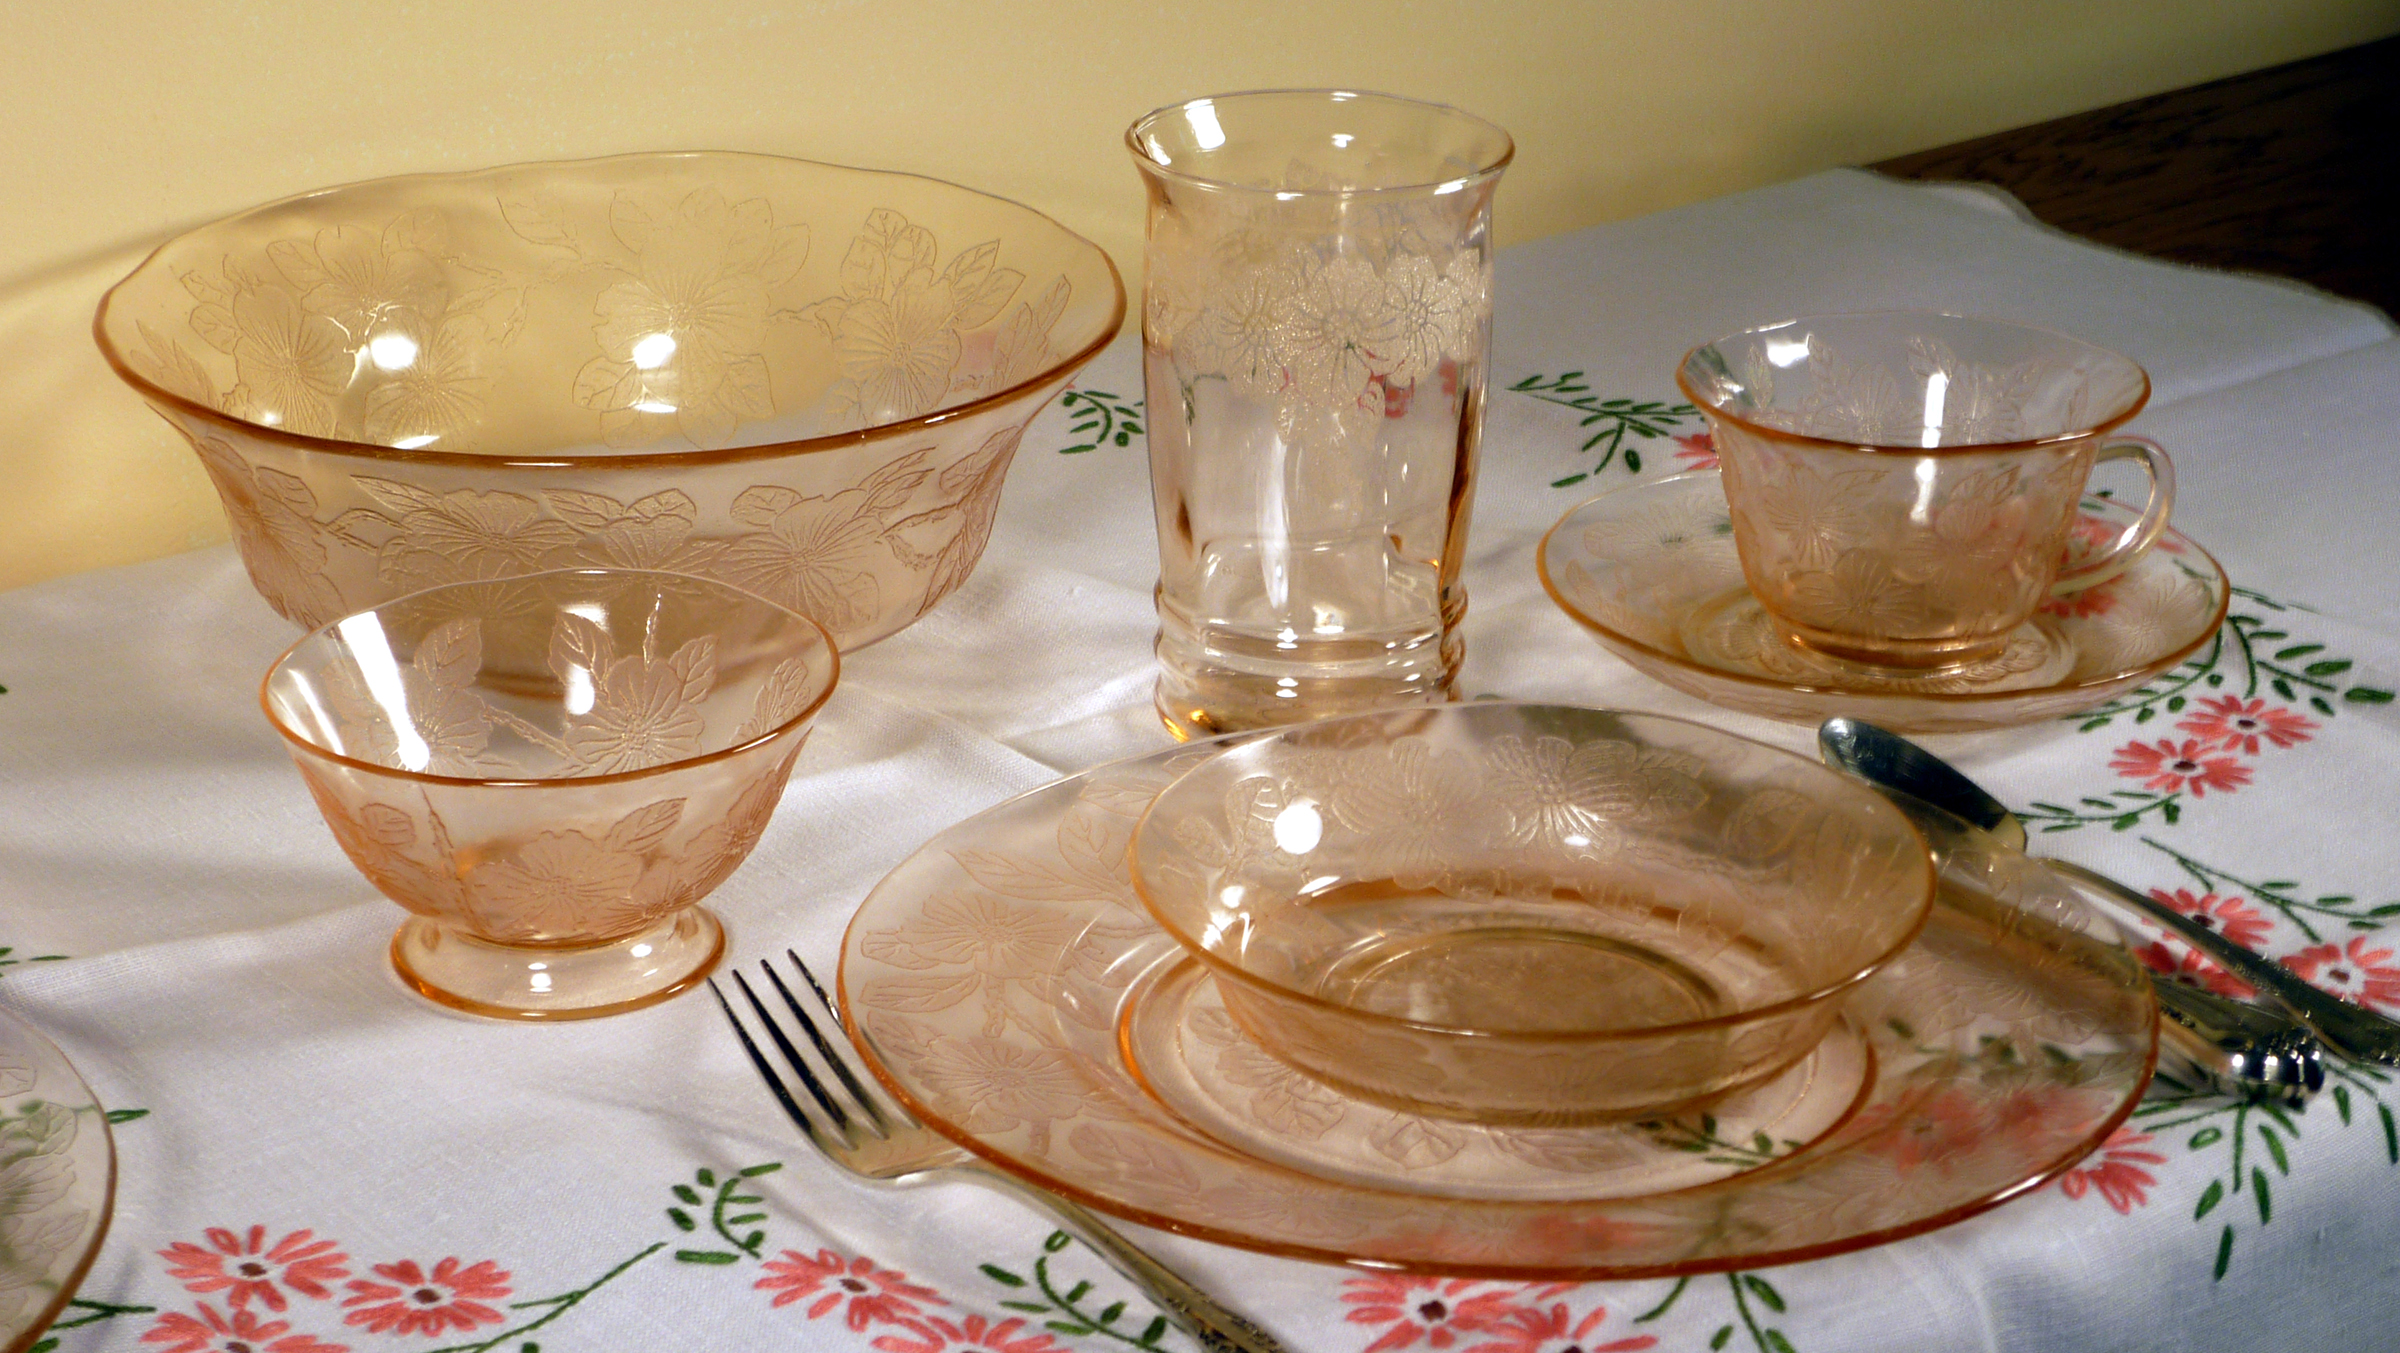 Dogwood Pink Depression Glass